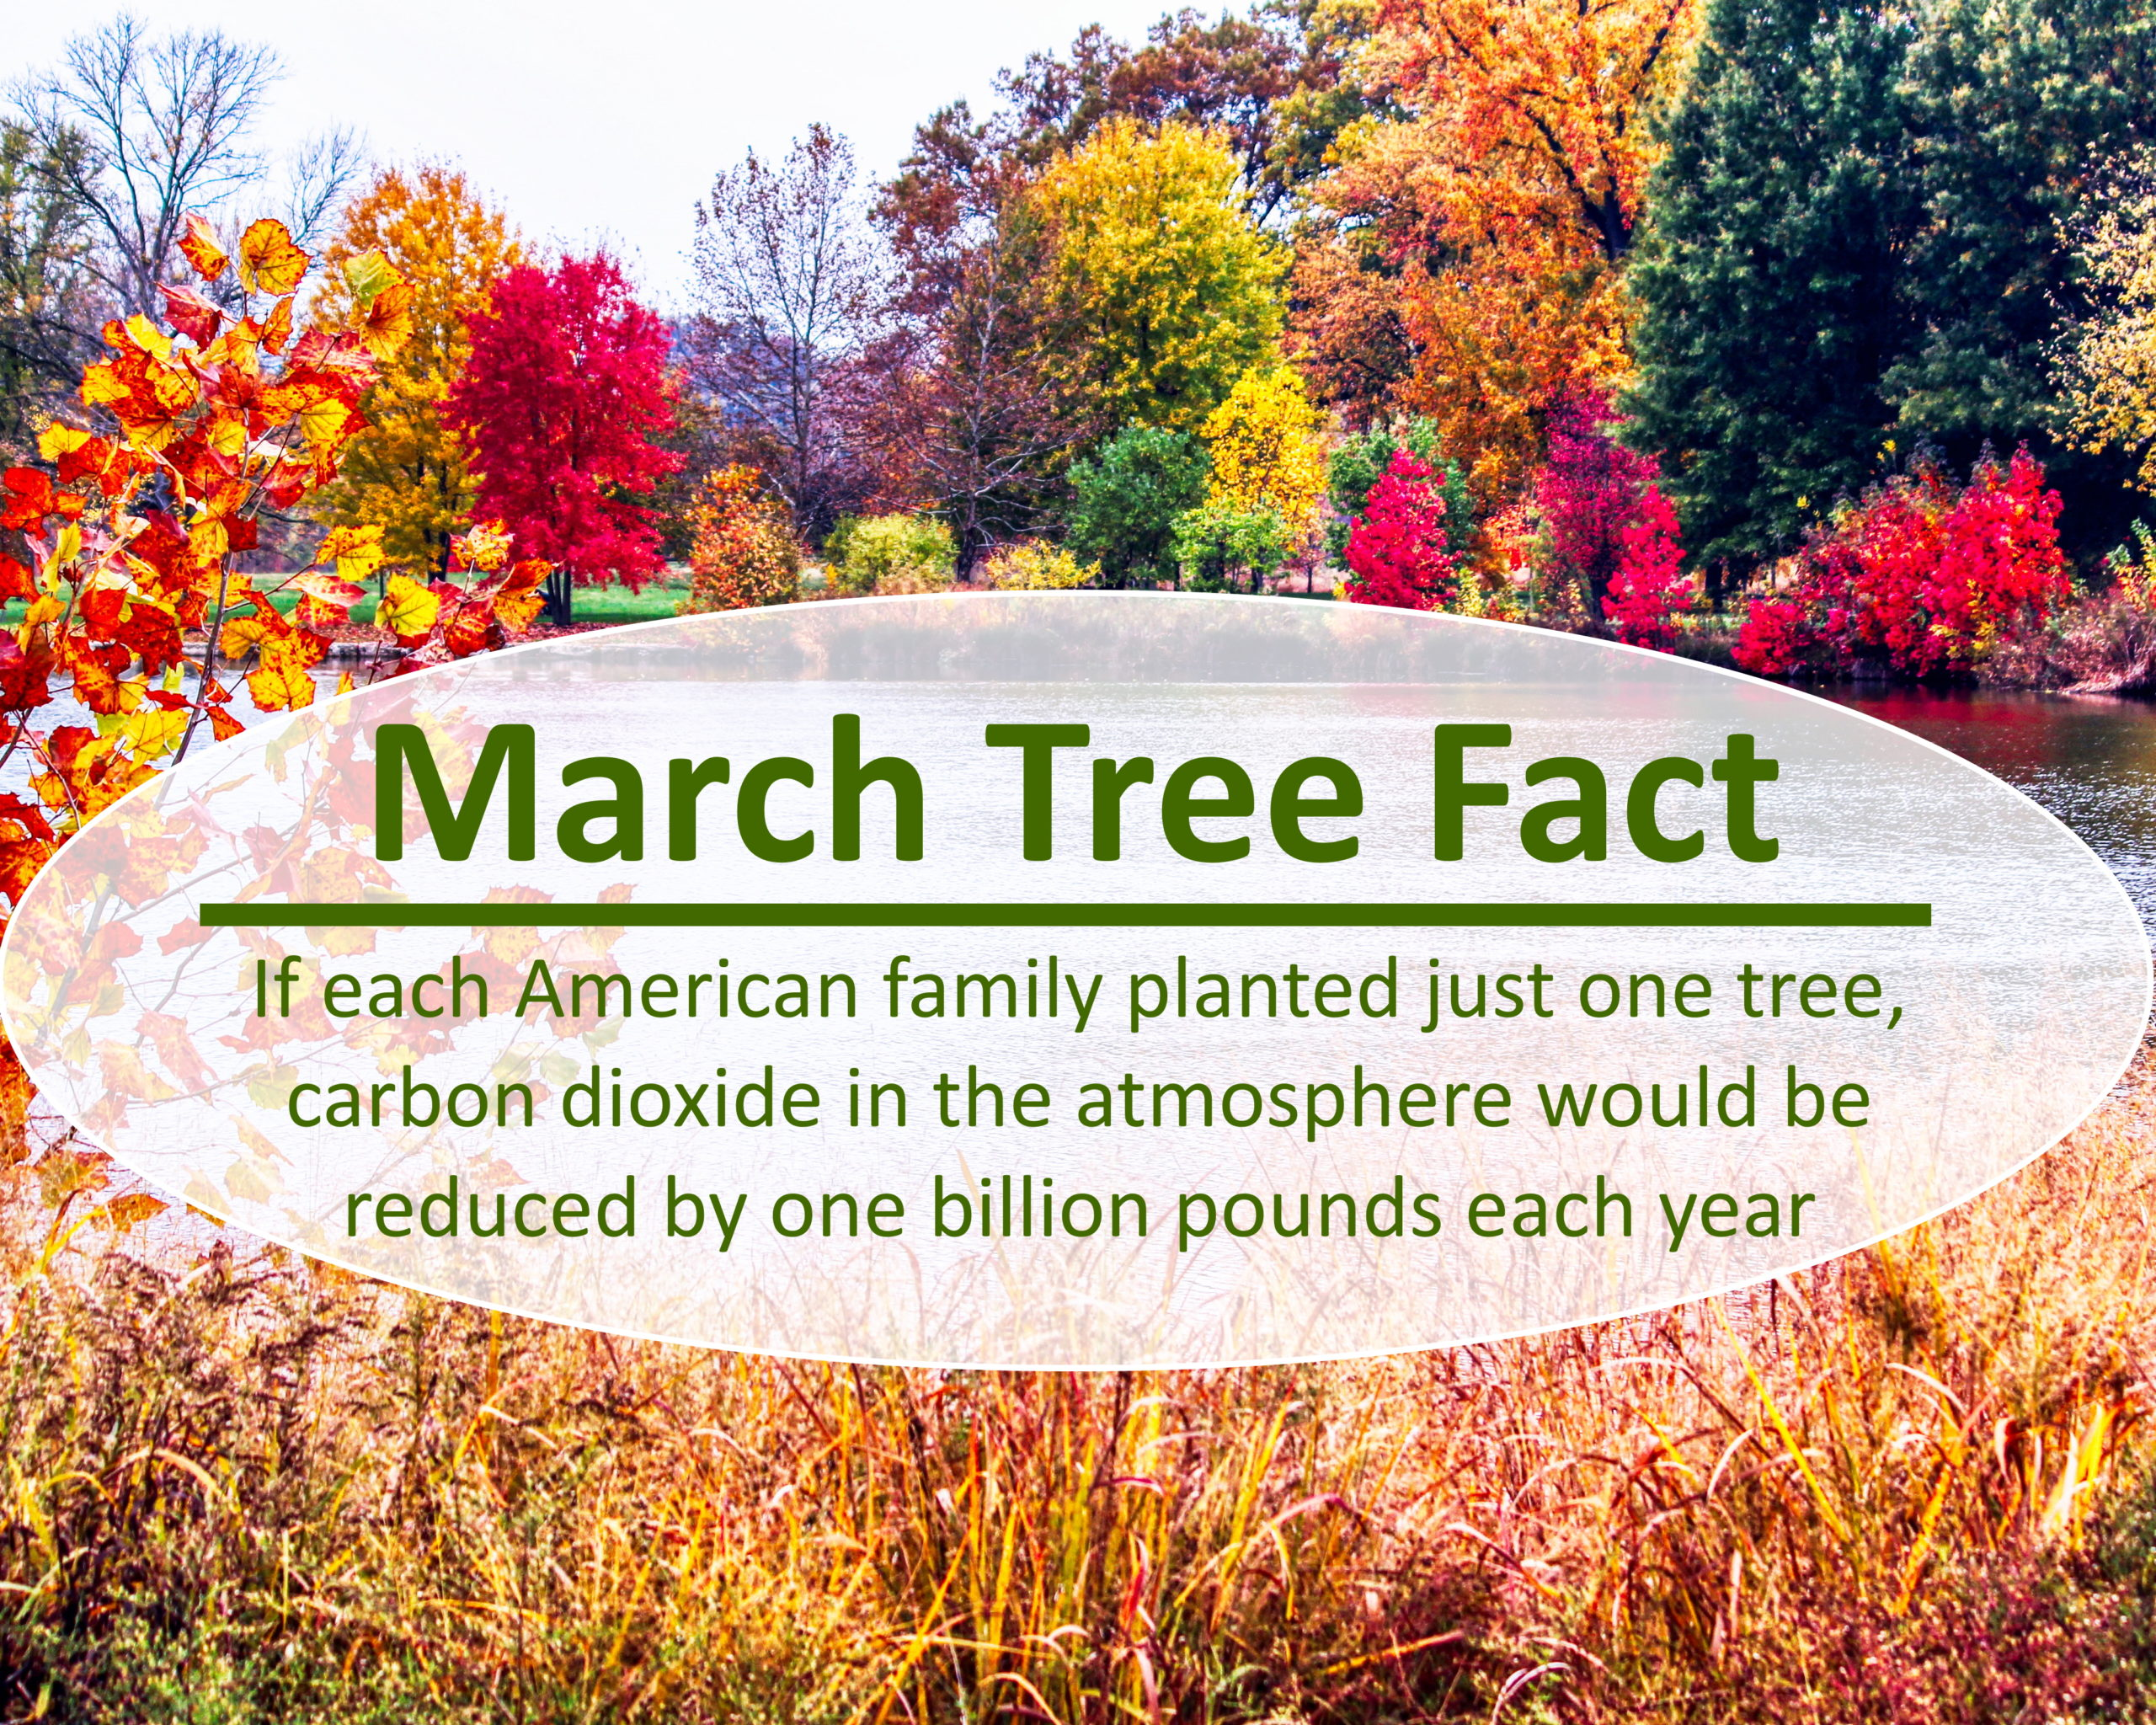 tree-fact-march